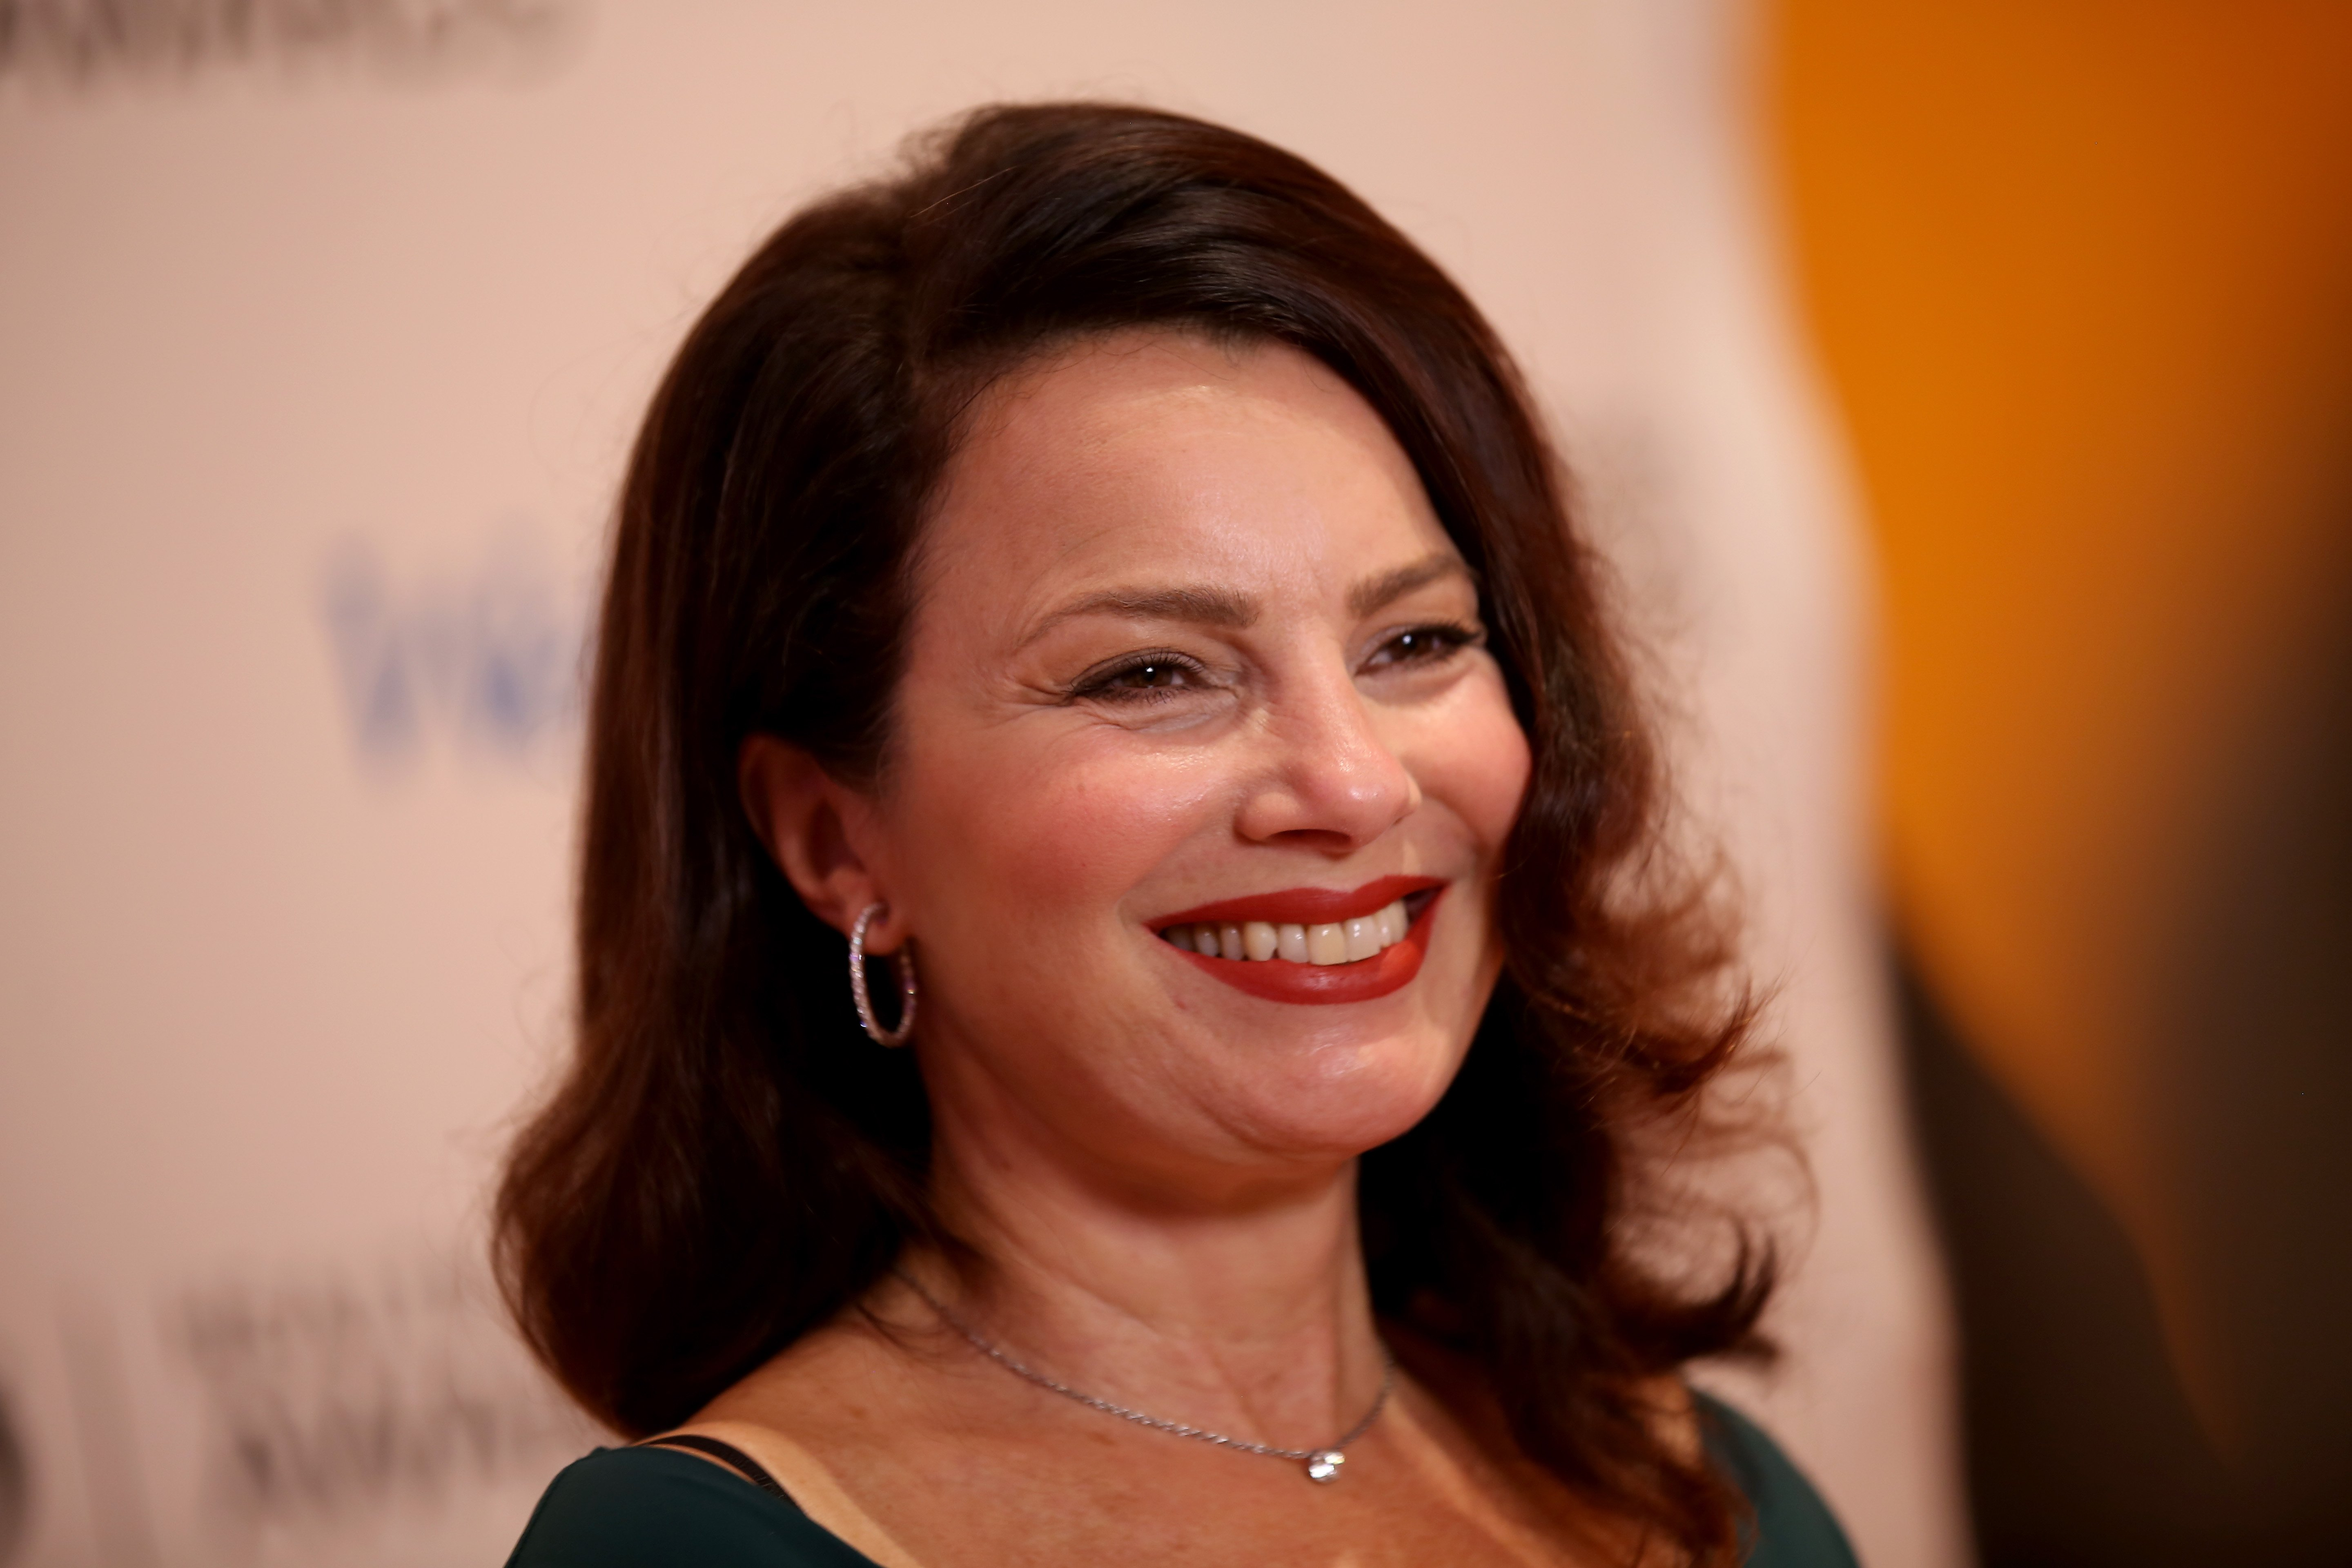 Fran Drescher attends the 2015 Health Hero Awards hosted by WebMD on November 5, 2015 | Photo: GettyImages